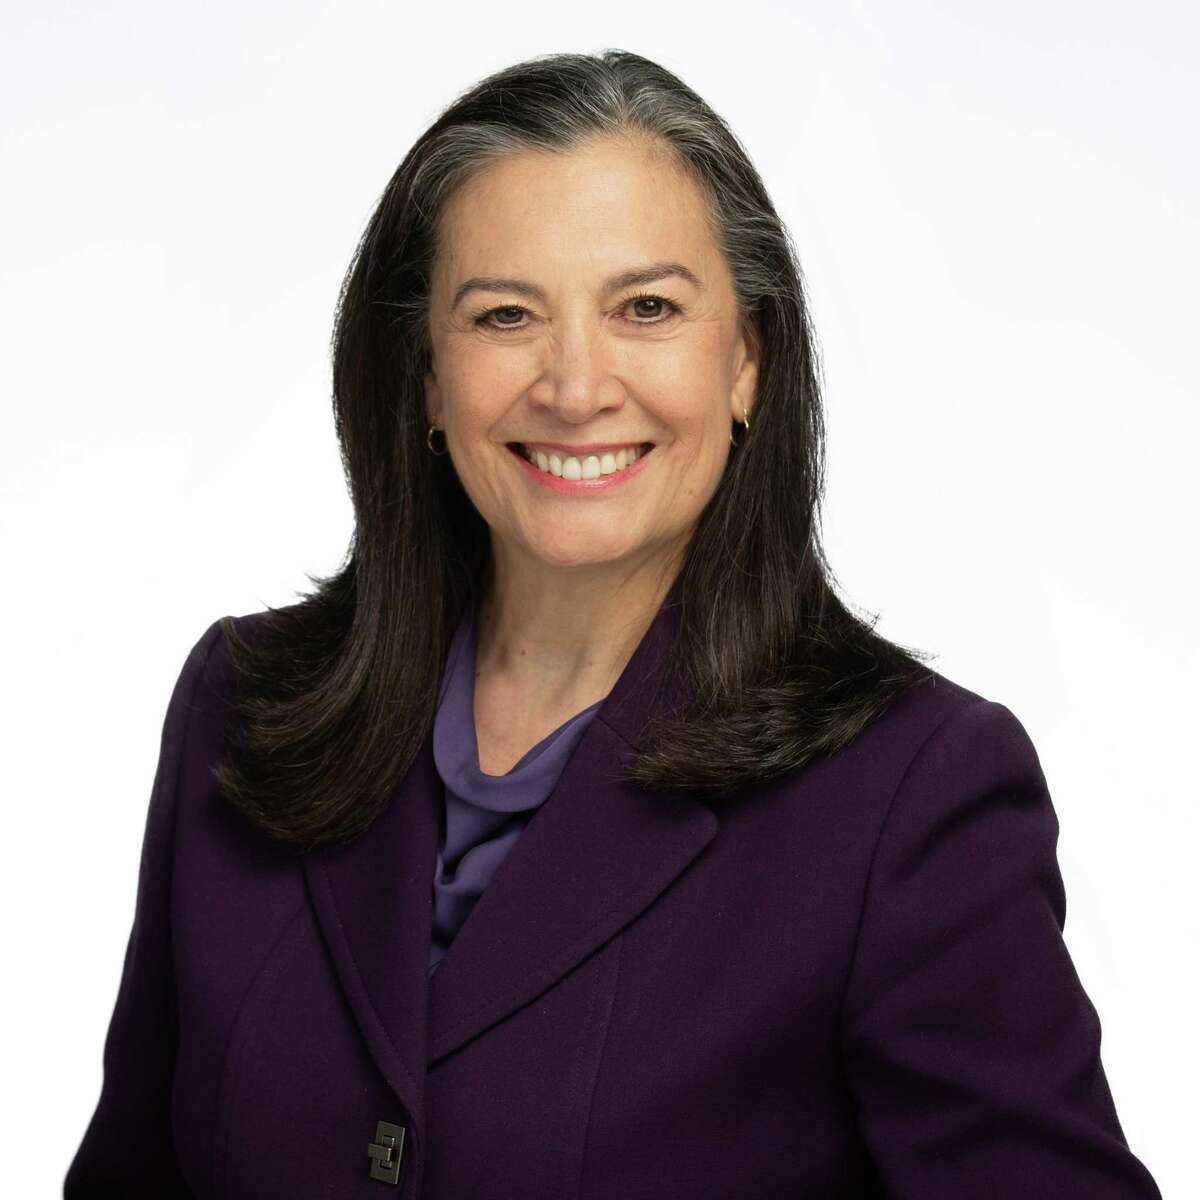 Dr. Pauline Dow is vice president of The Holdsworth Center. She will lead a discussion presented by the Fort Bend Chamber of Commerce on developing educational leaders for the future from 11:30 a.m.-1 p.m. Thursday, Aug. 26, 2021.